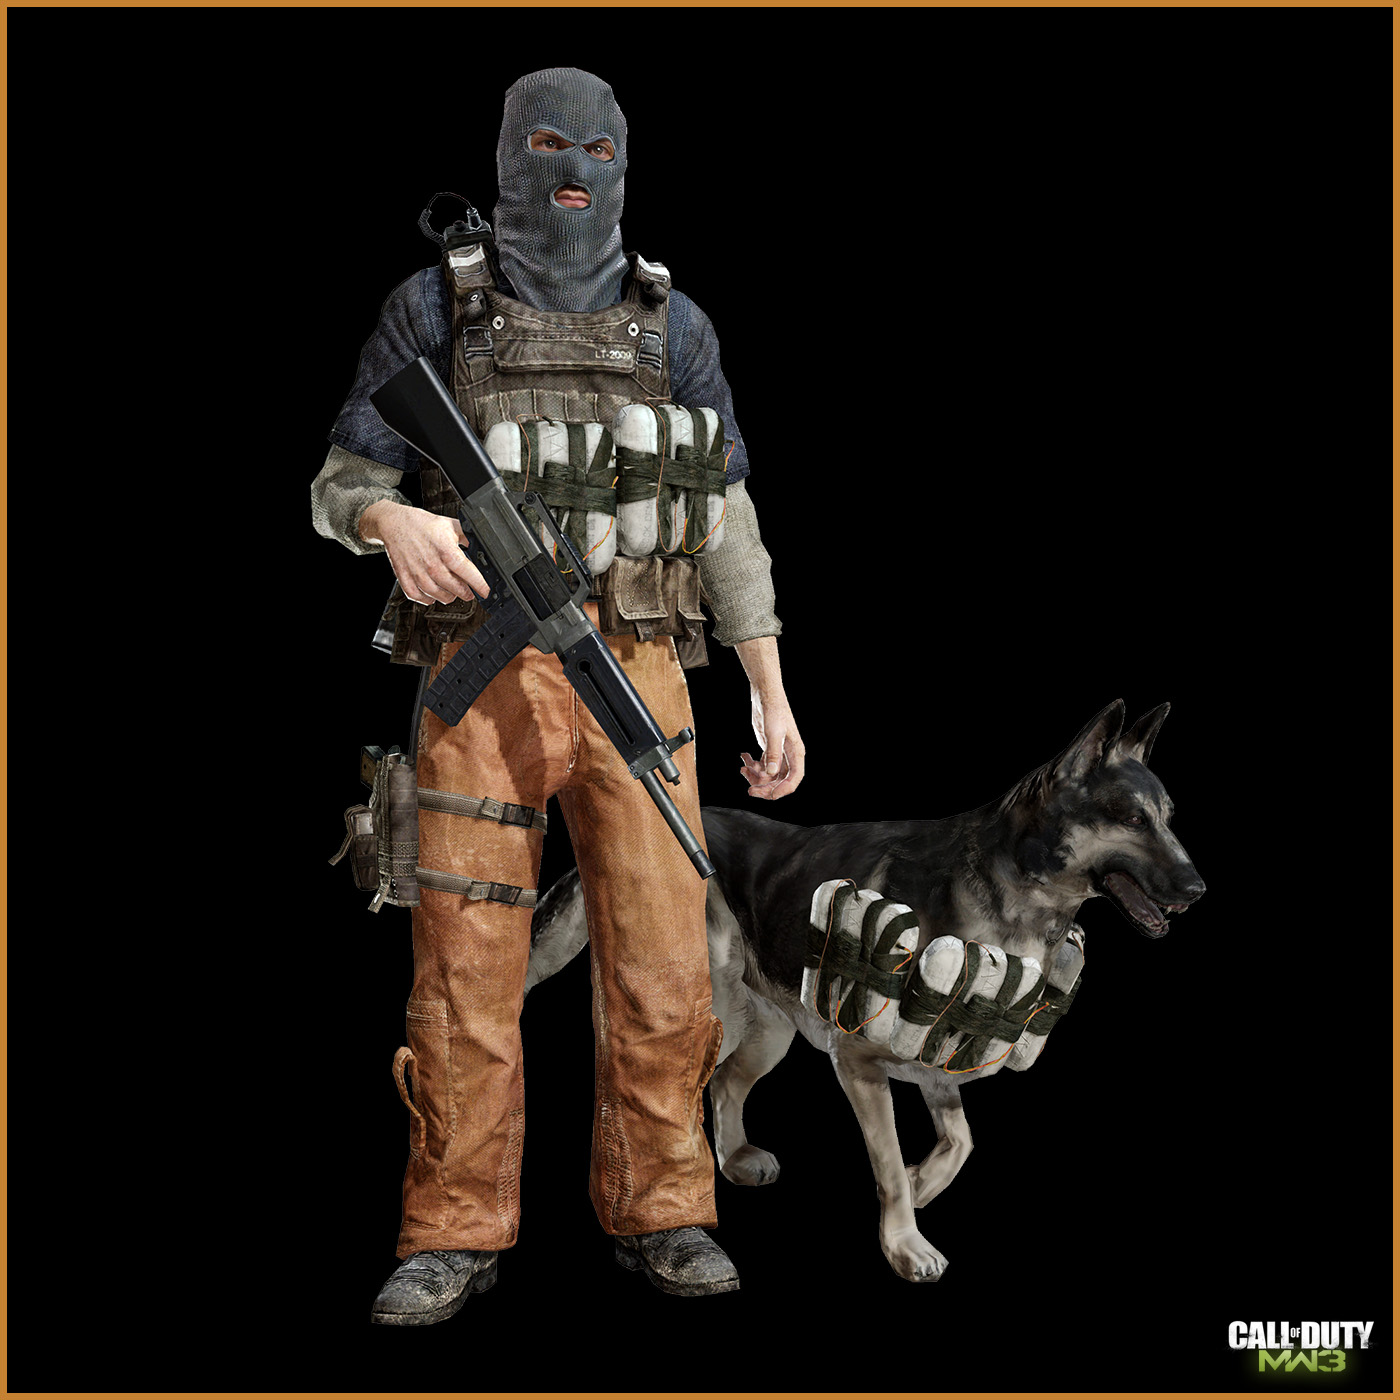 Suicide Bomber | Call of Duty Wiki | FANDOM powered by Wikia